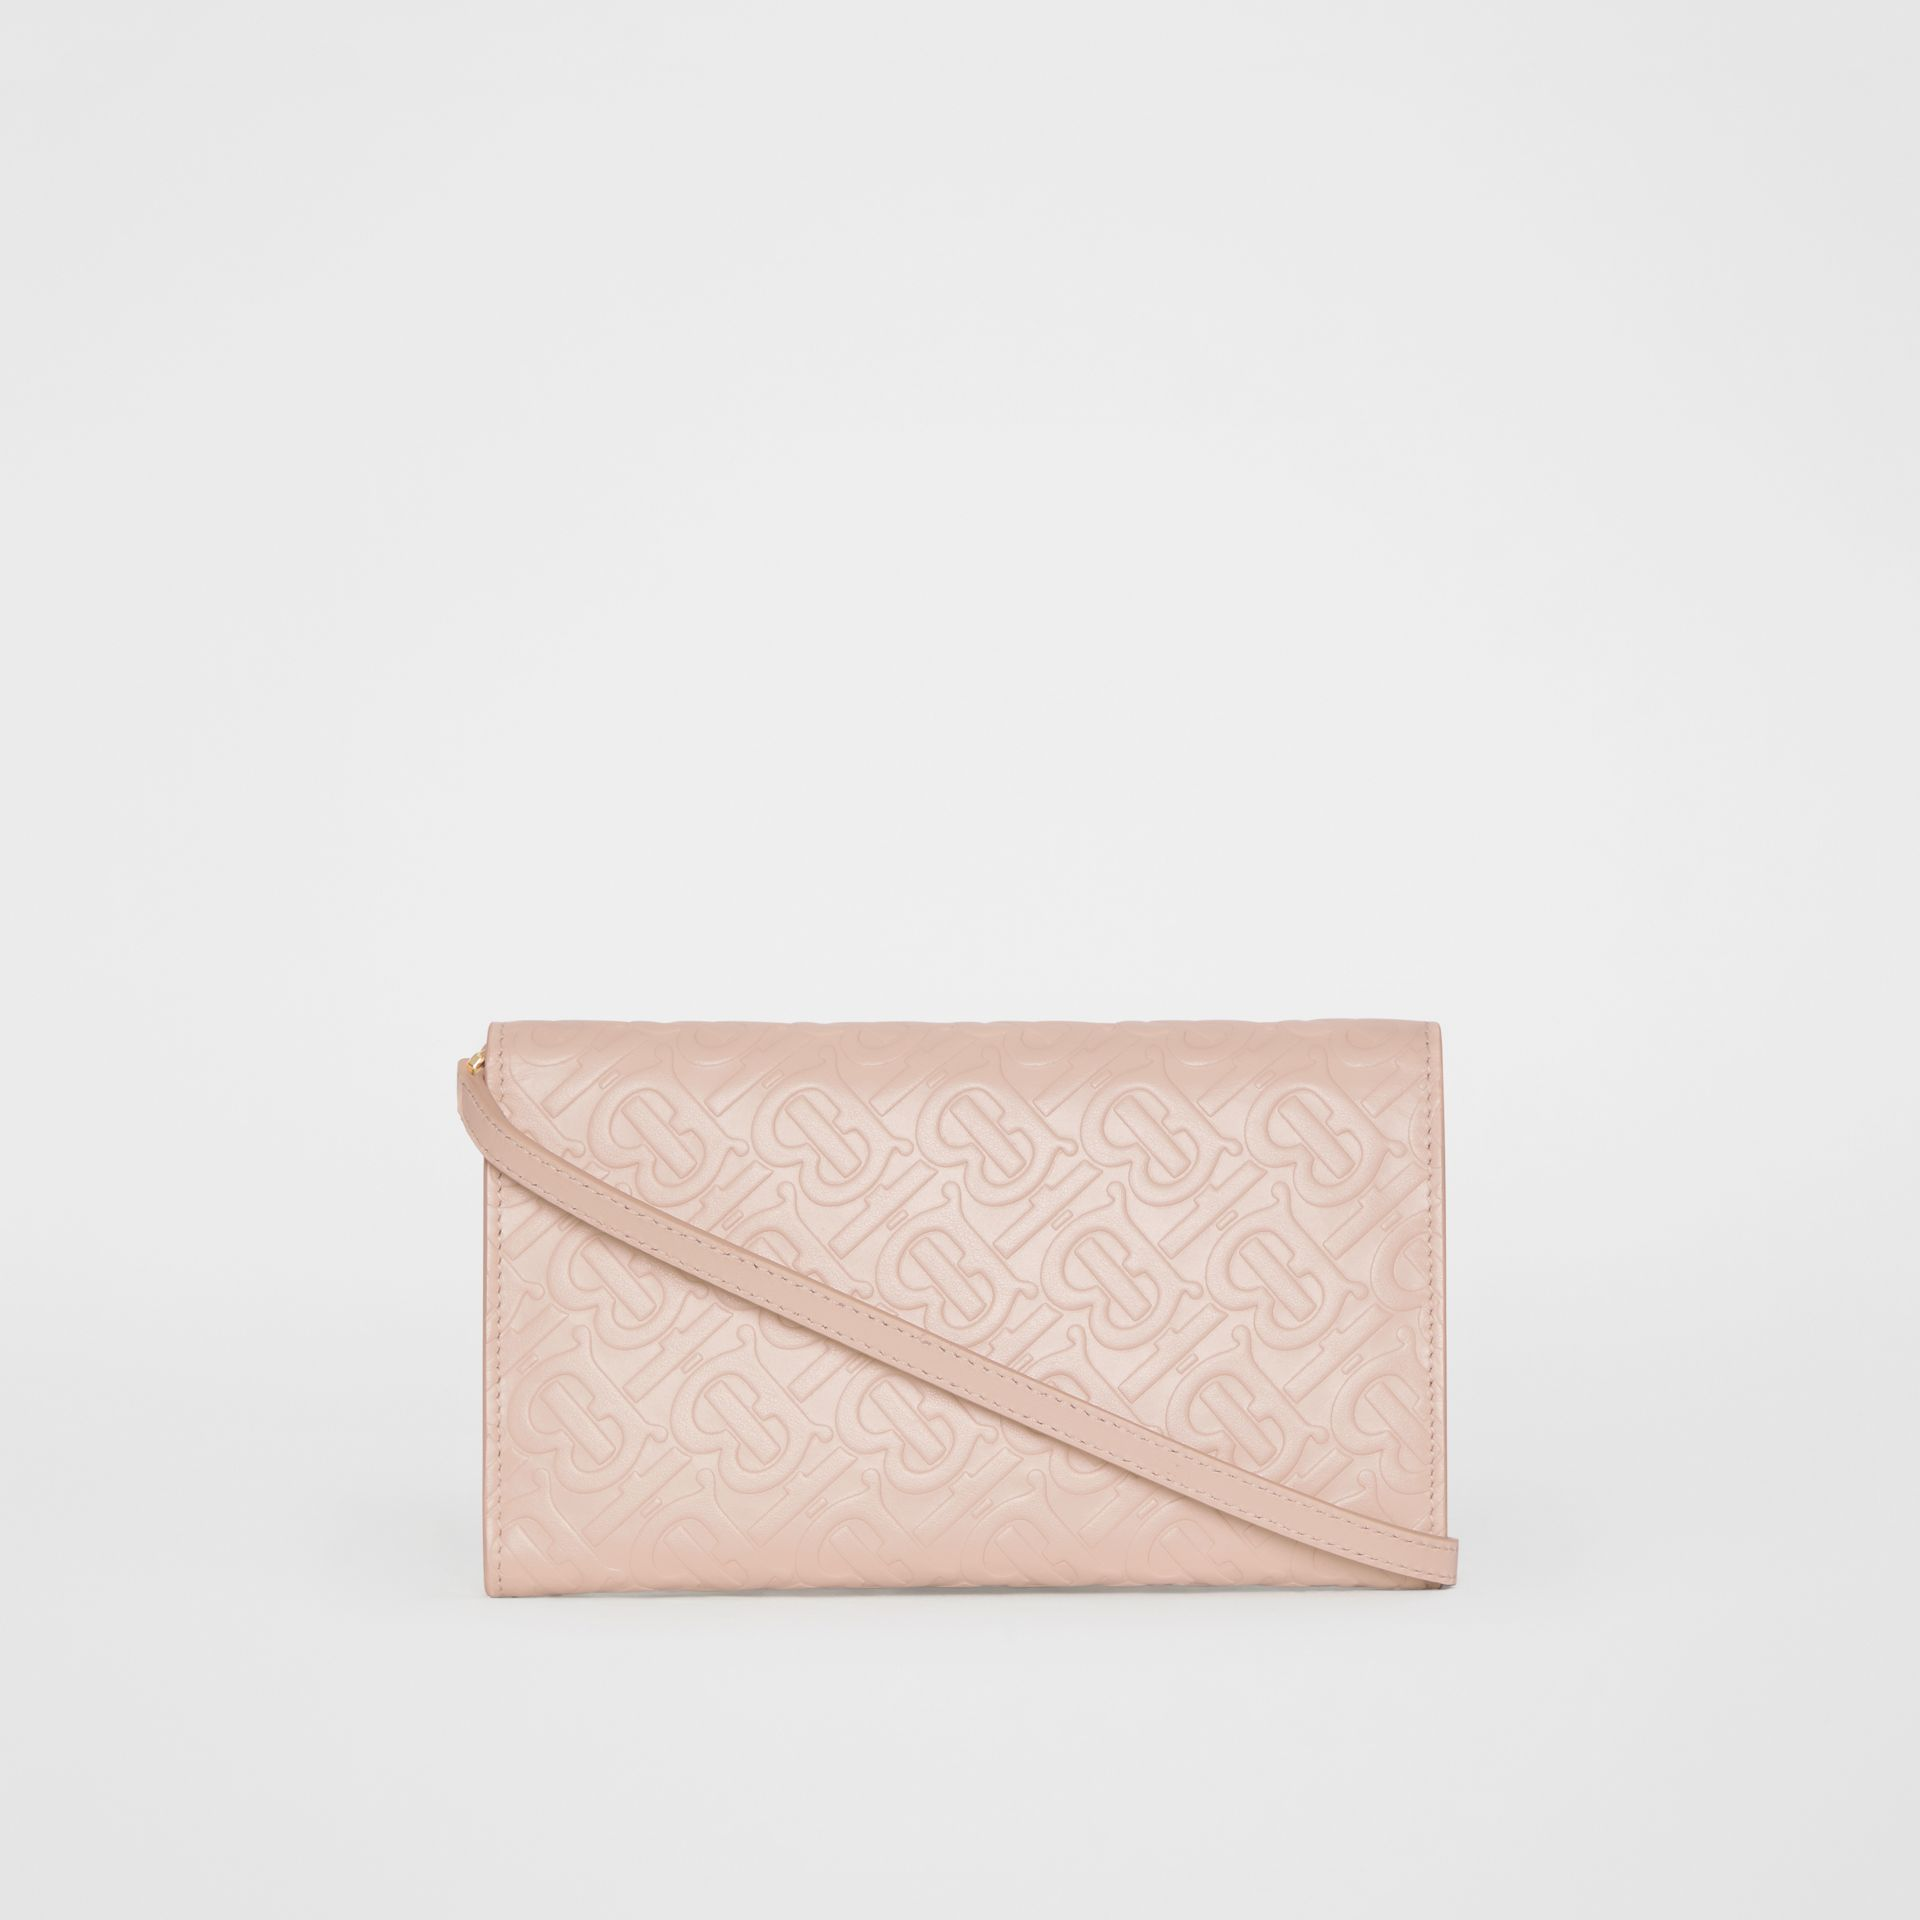 Monogram Leather Wallet with Detachable Strap in Rose Beige - Women | Burberry - gallery image 8